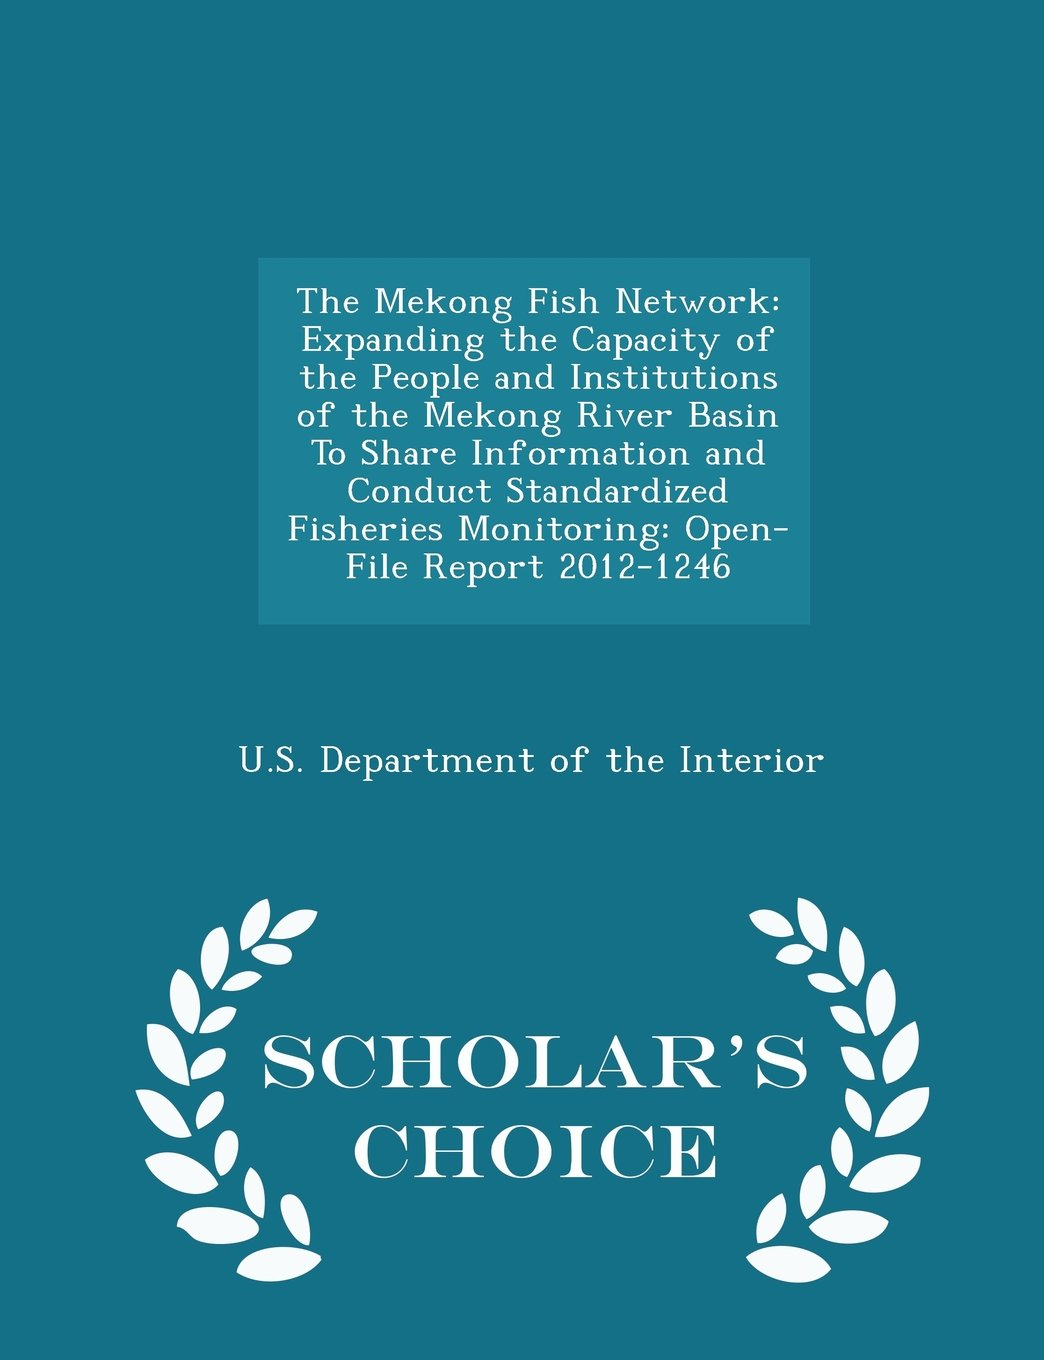 Download The Mekong Fish Network: Expanding the Capacity of the People and Institutions of the Mekong River Basin To Share Information and Conduct Standardized ... Report 2012-1246 - Scholar's Choice Edition pdf epub